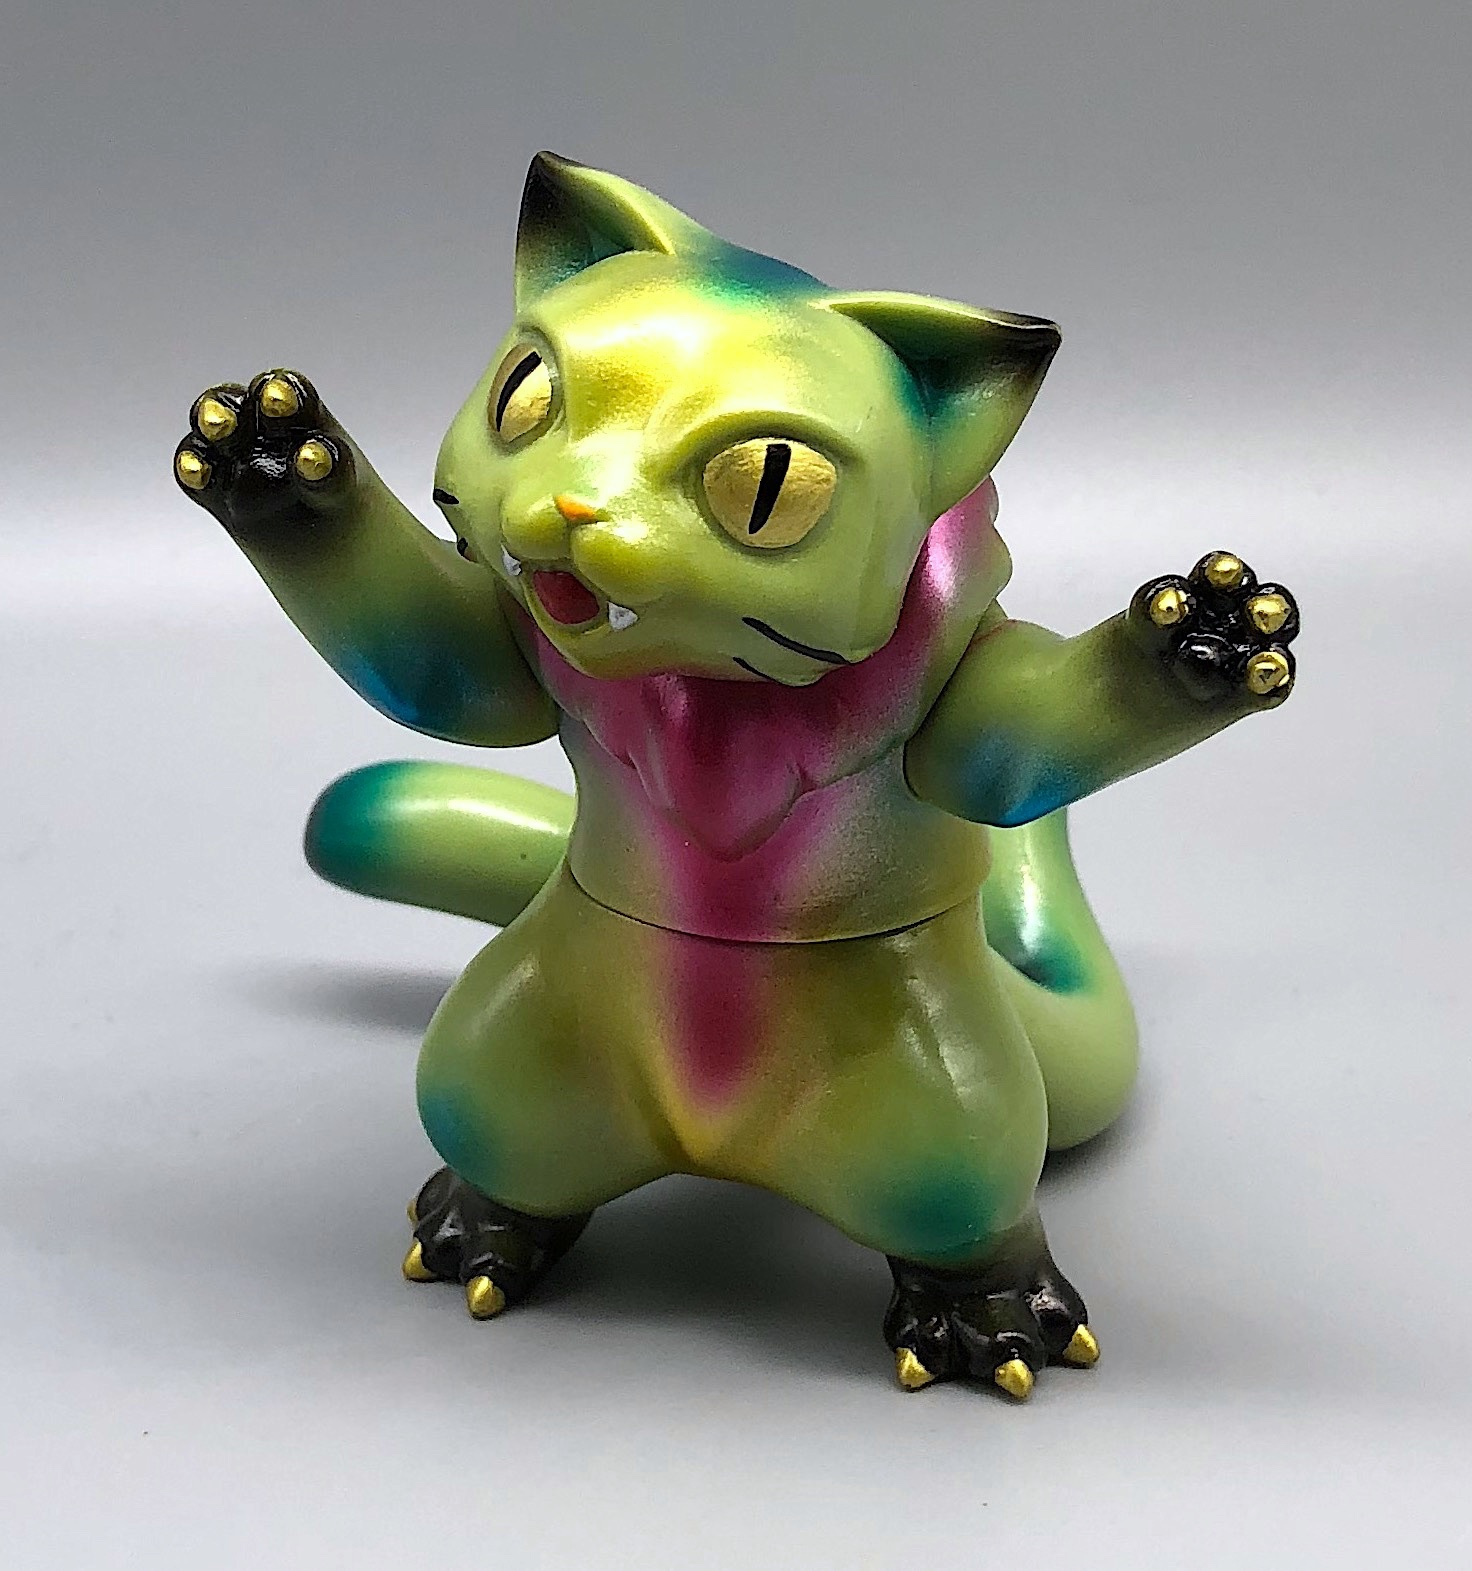 Max Toy Limited Green Metallic Negora